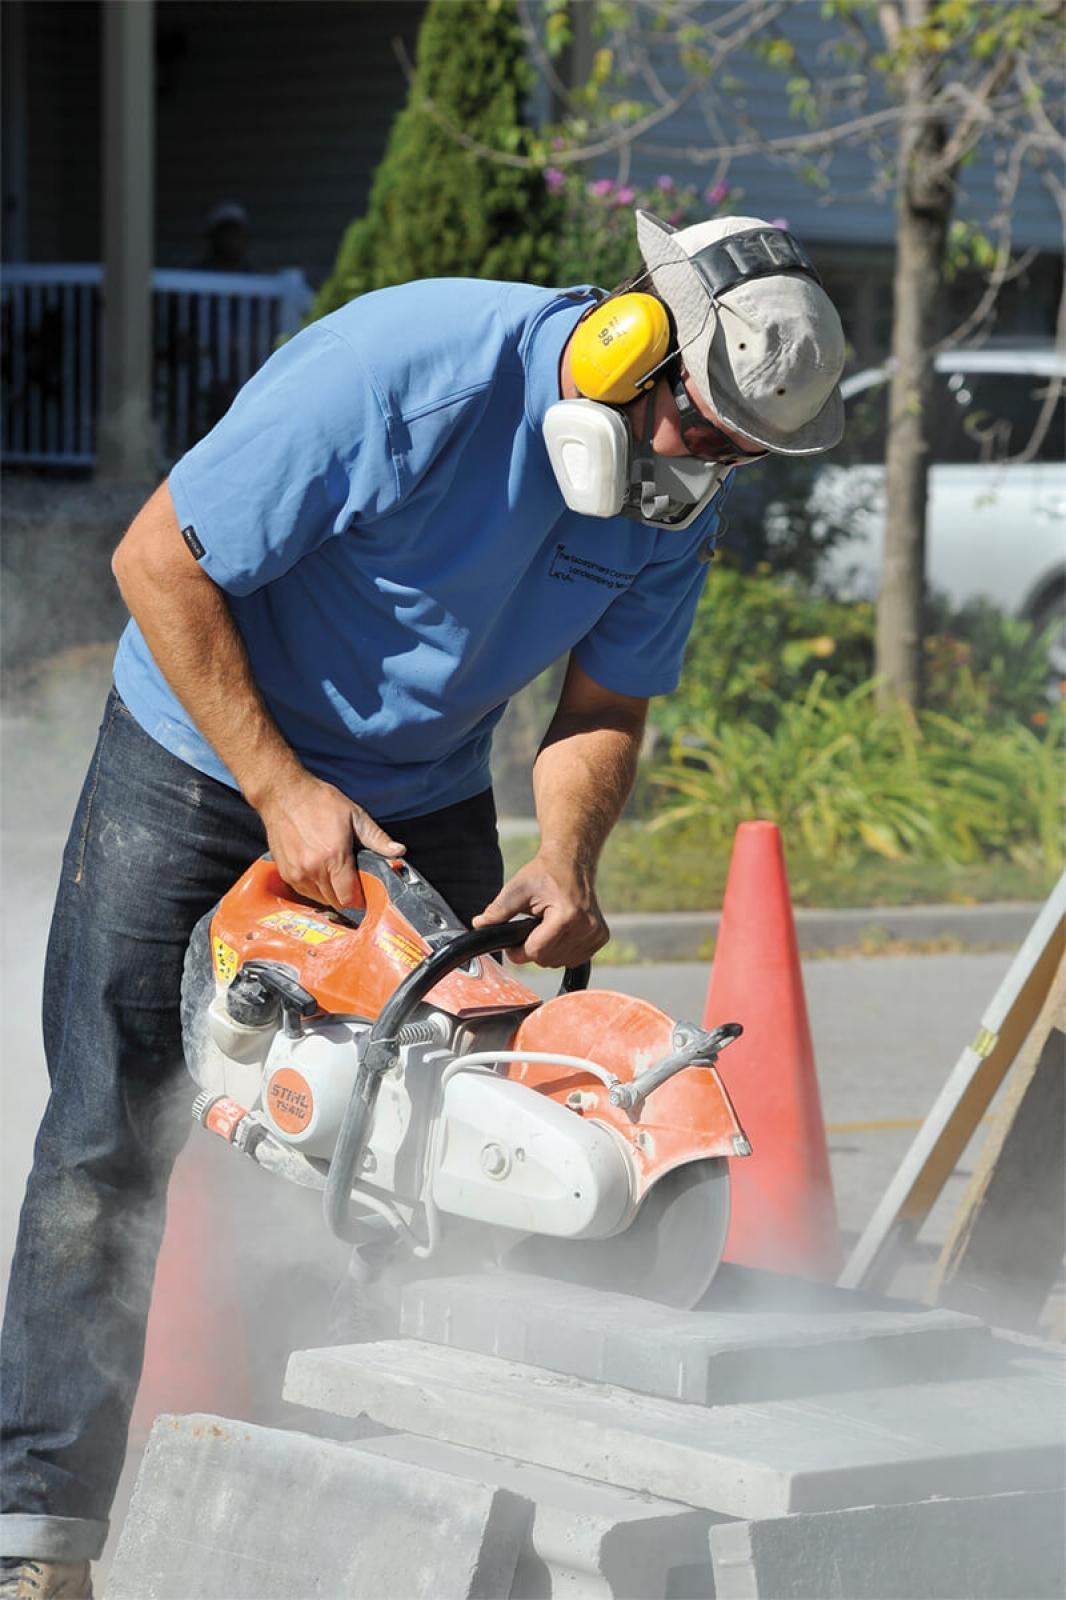 Respiratory hazards are the focus of a health and safety blitz this fall.